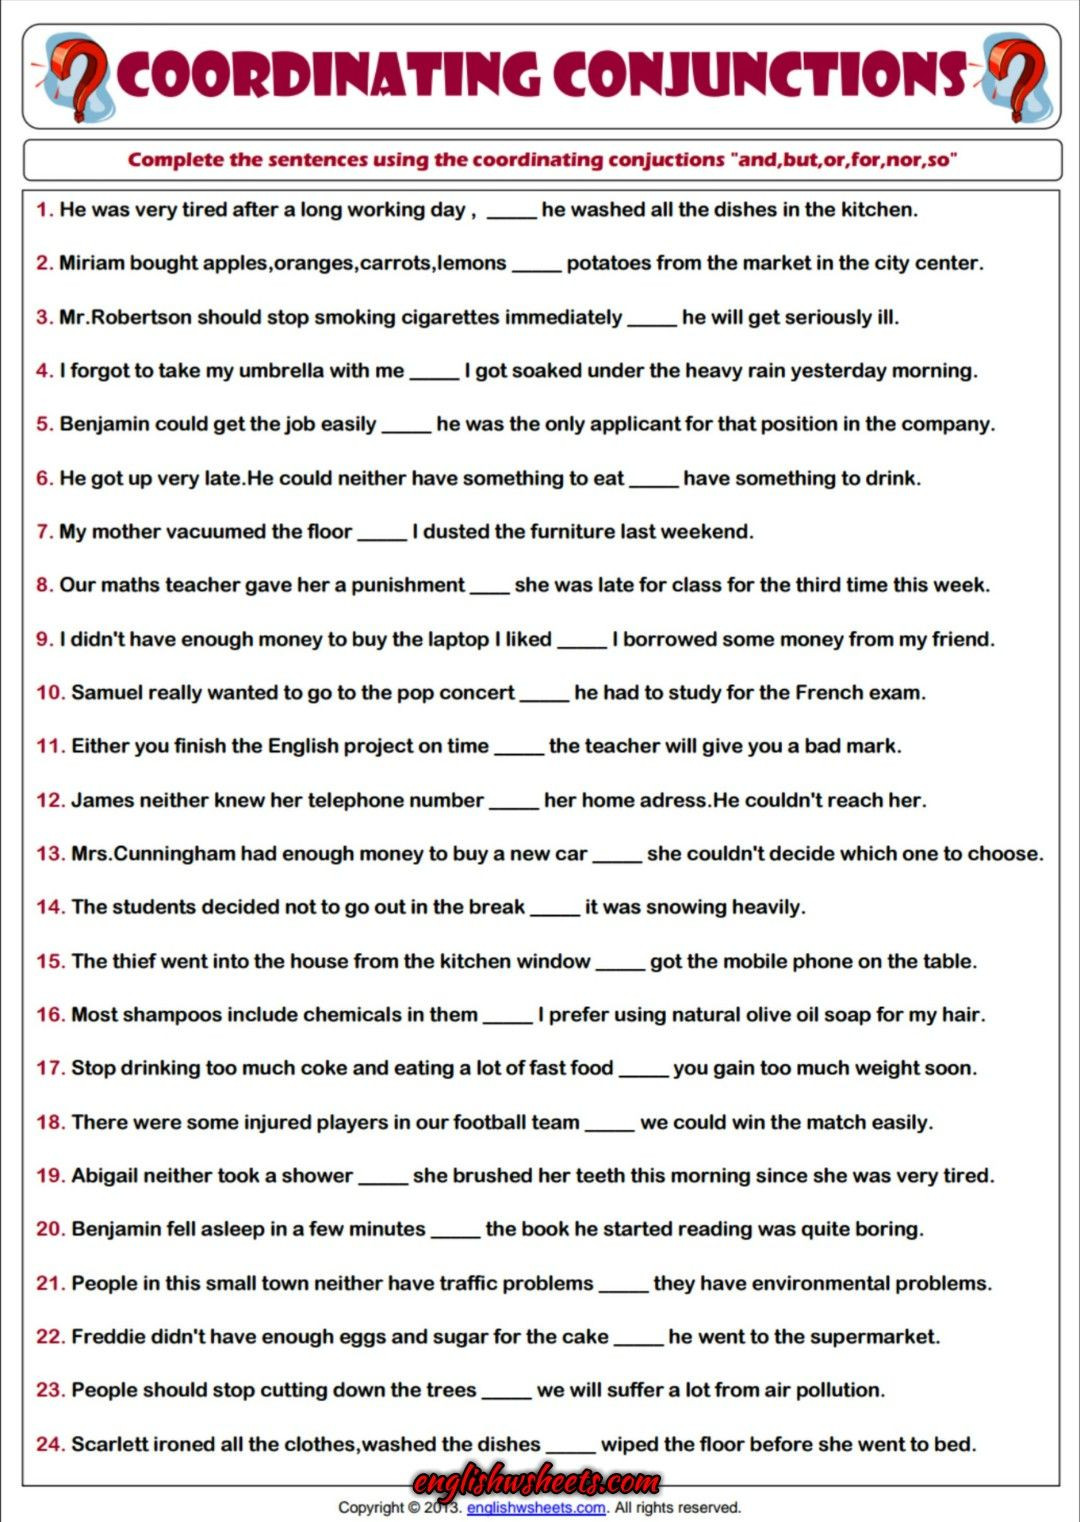 Conjunctions Worksheet 5th Grade Coordinating Conjunctions Esl Printable Grammar Worksheet